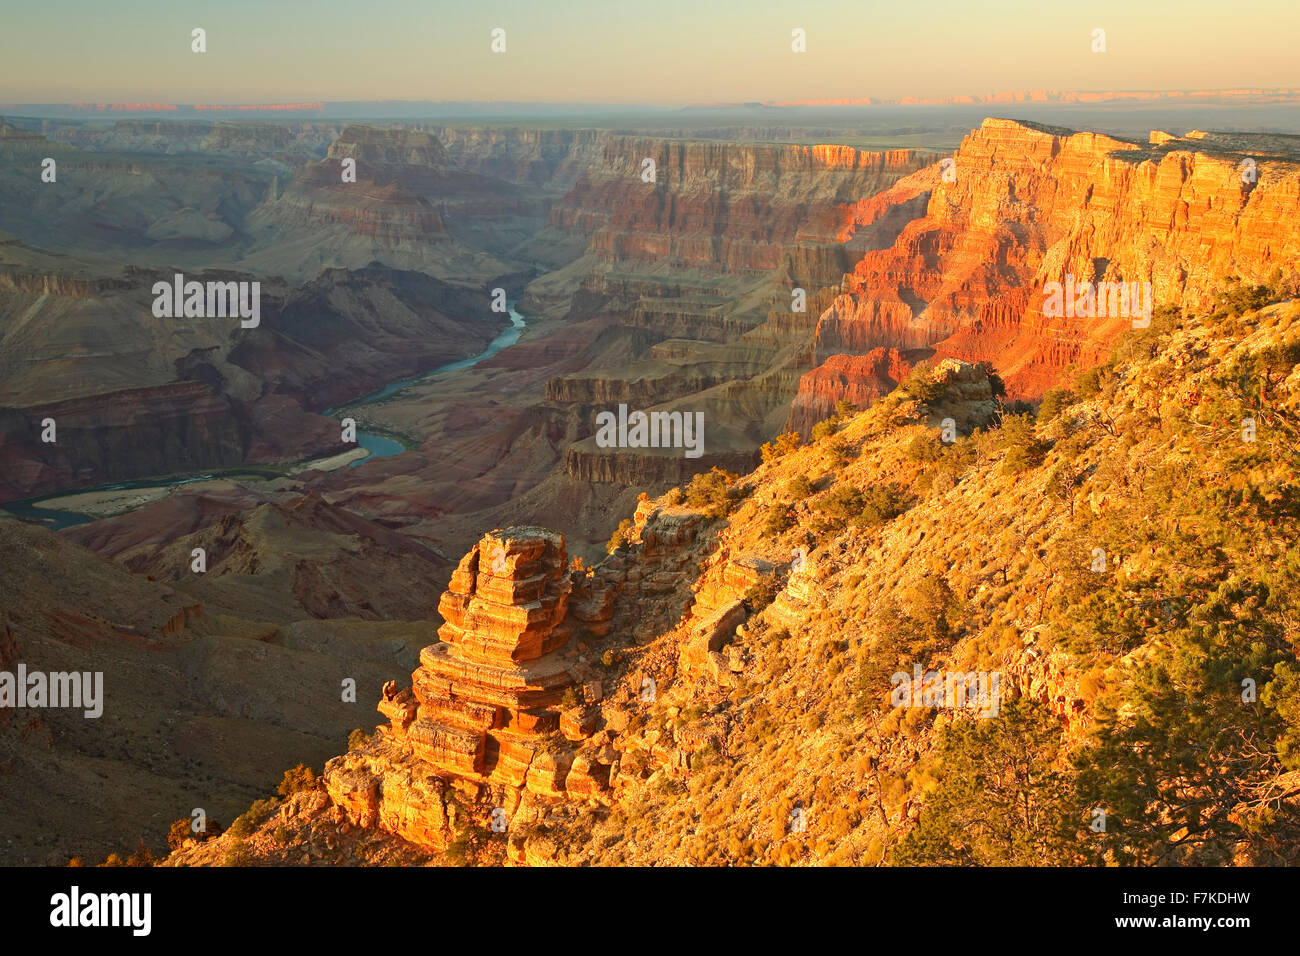 Colorado River and canyon walls from Desert View Overlook, Grand Canyon National Park, Arizona USA - Stock Image